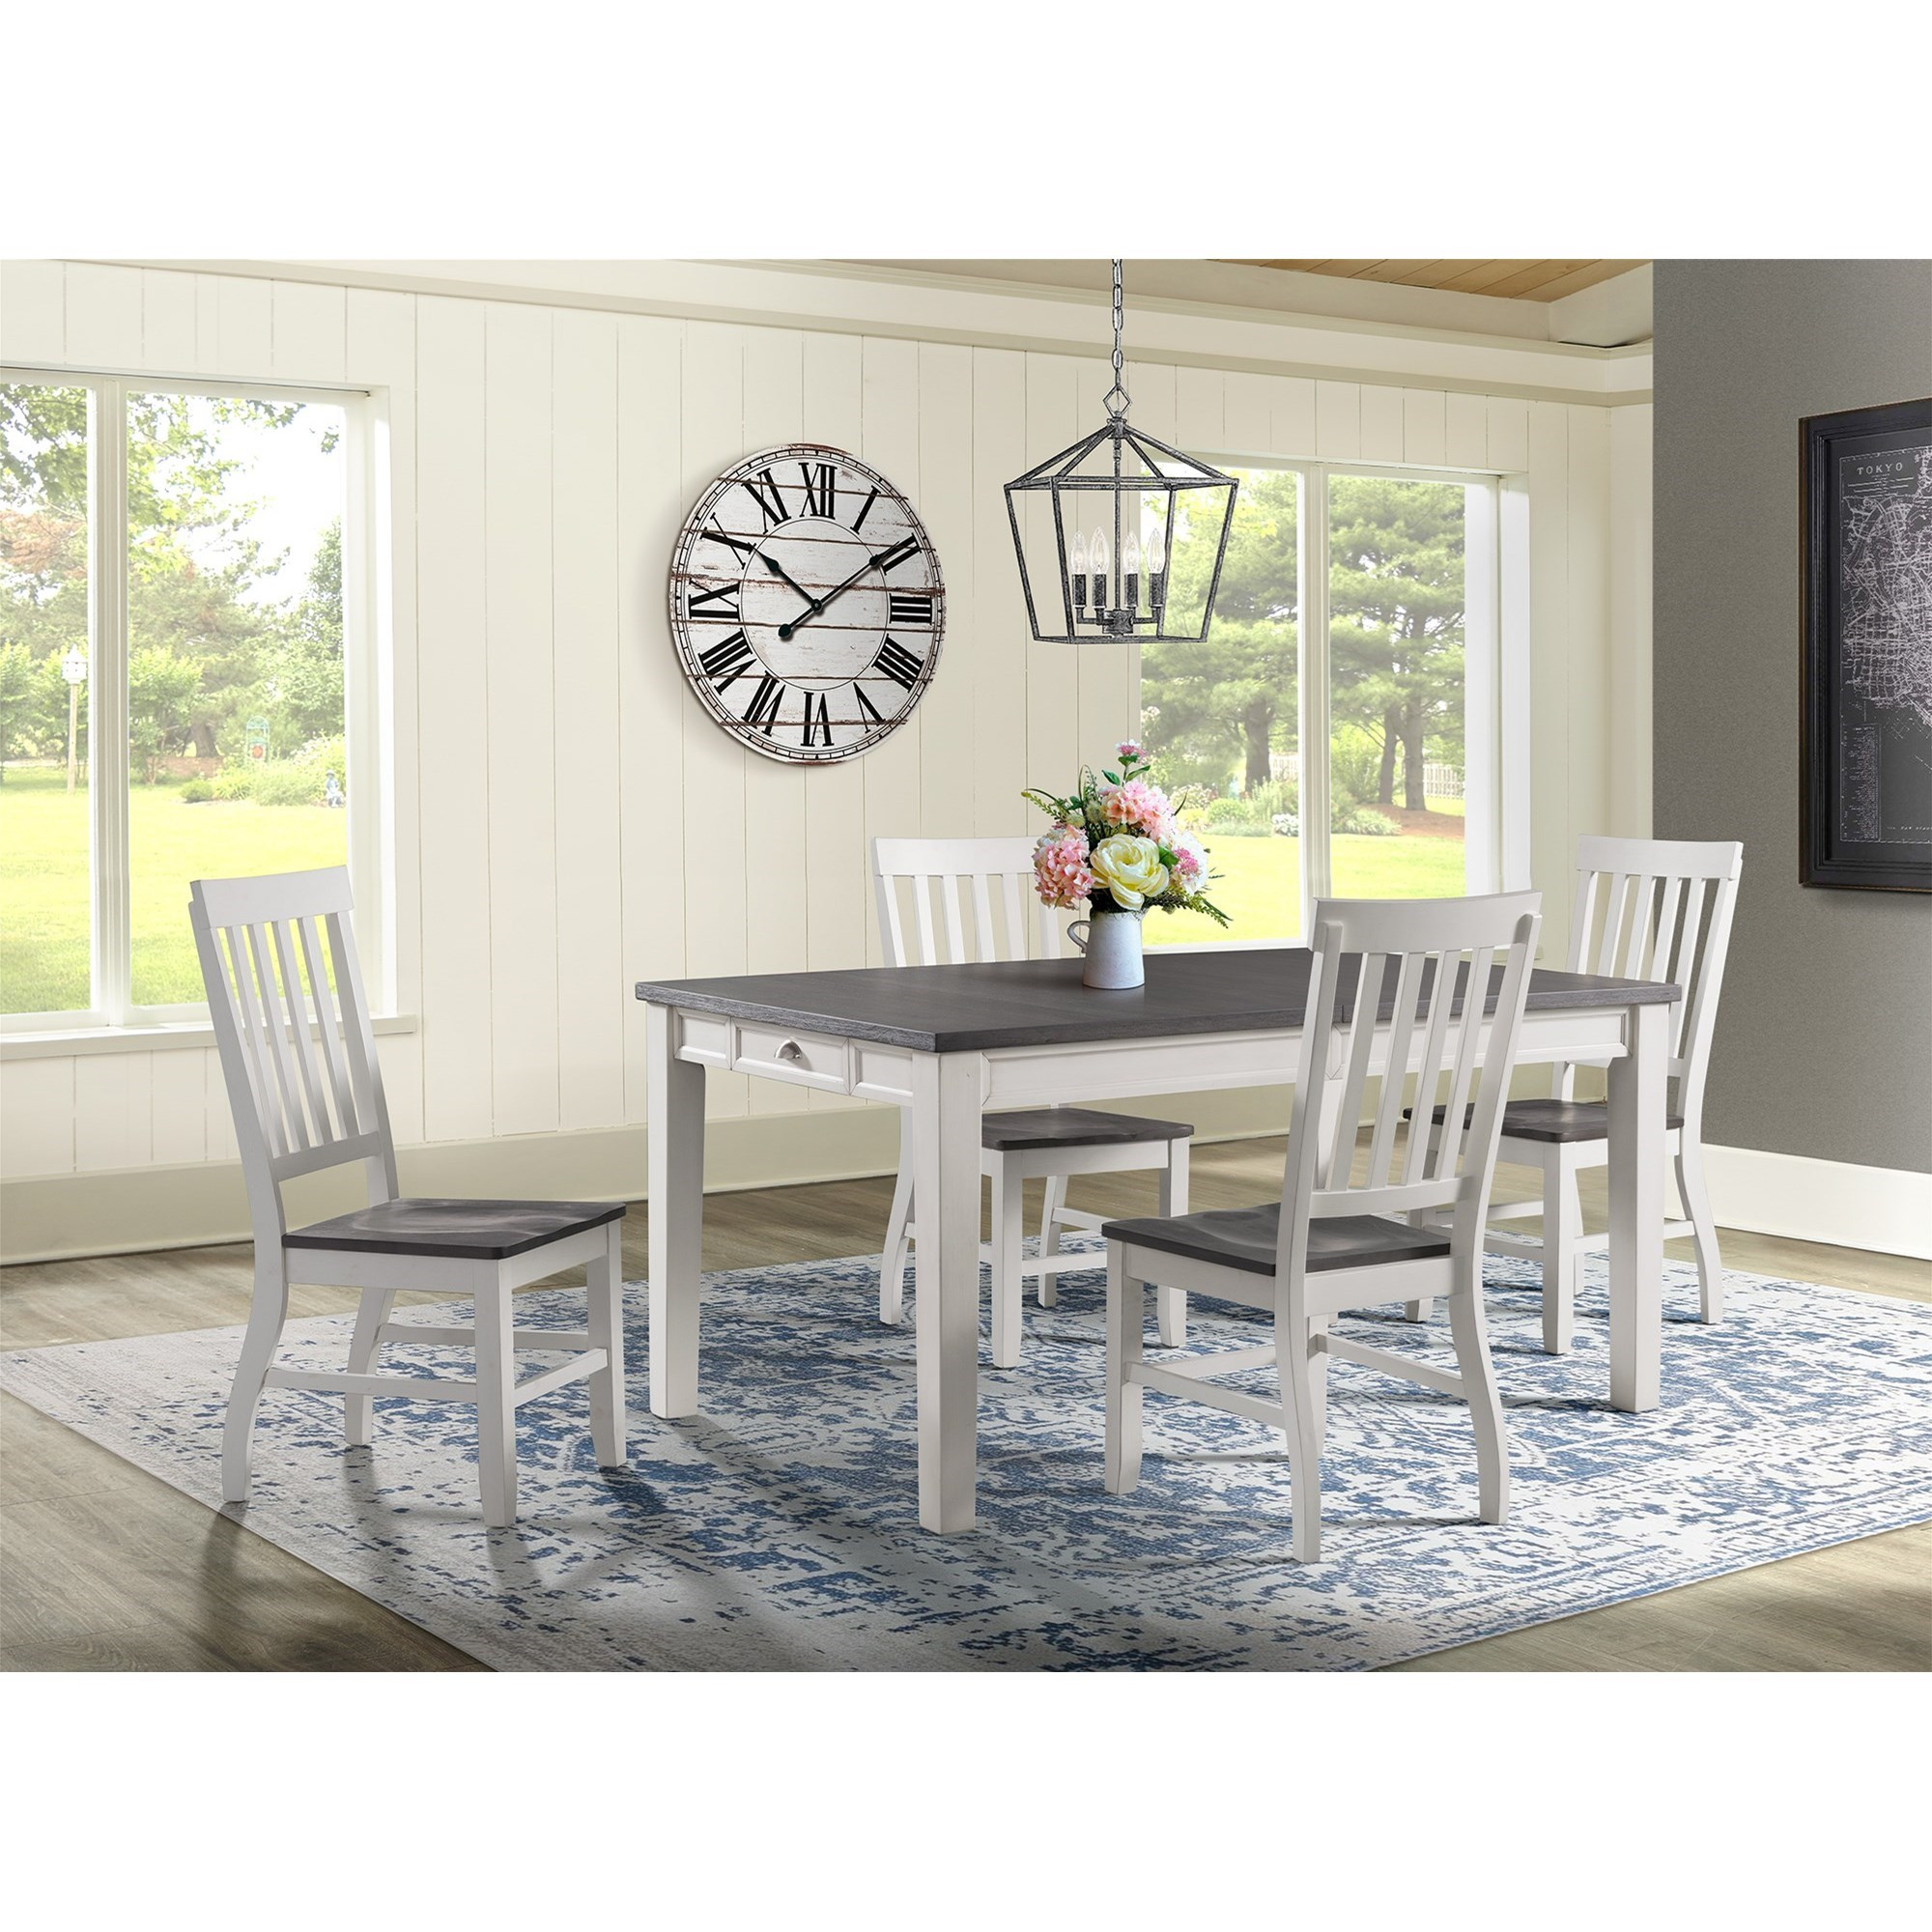 5 chair dining set